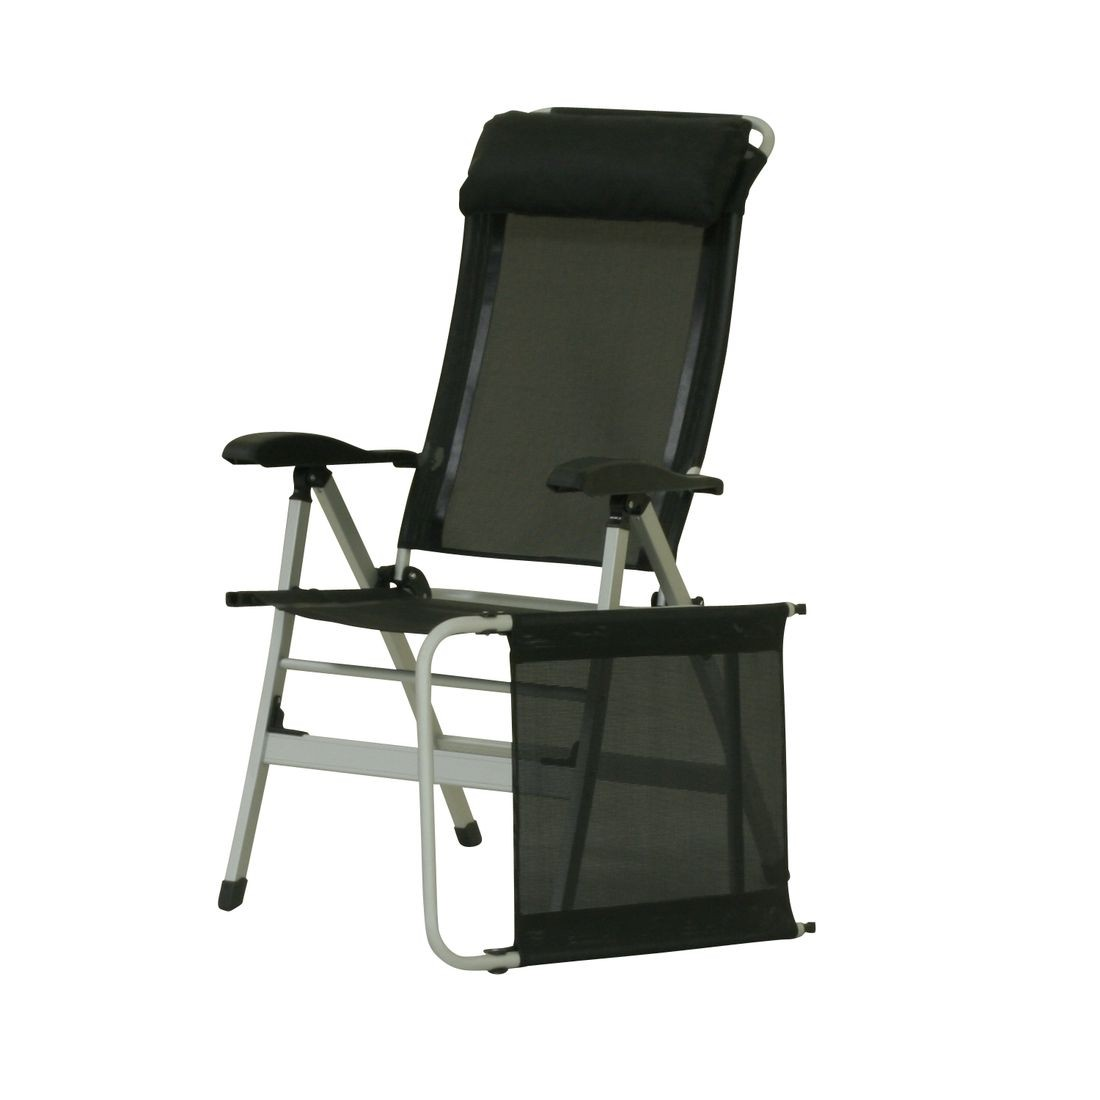 10t Easychair Aluminium Camping Chair High Back Incl